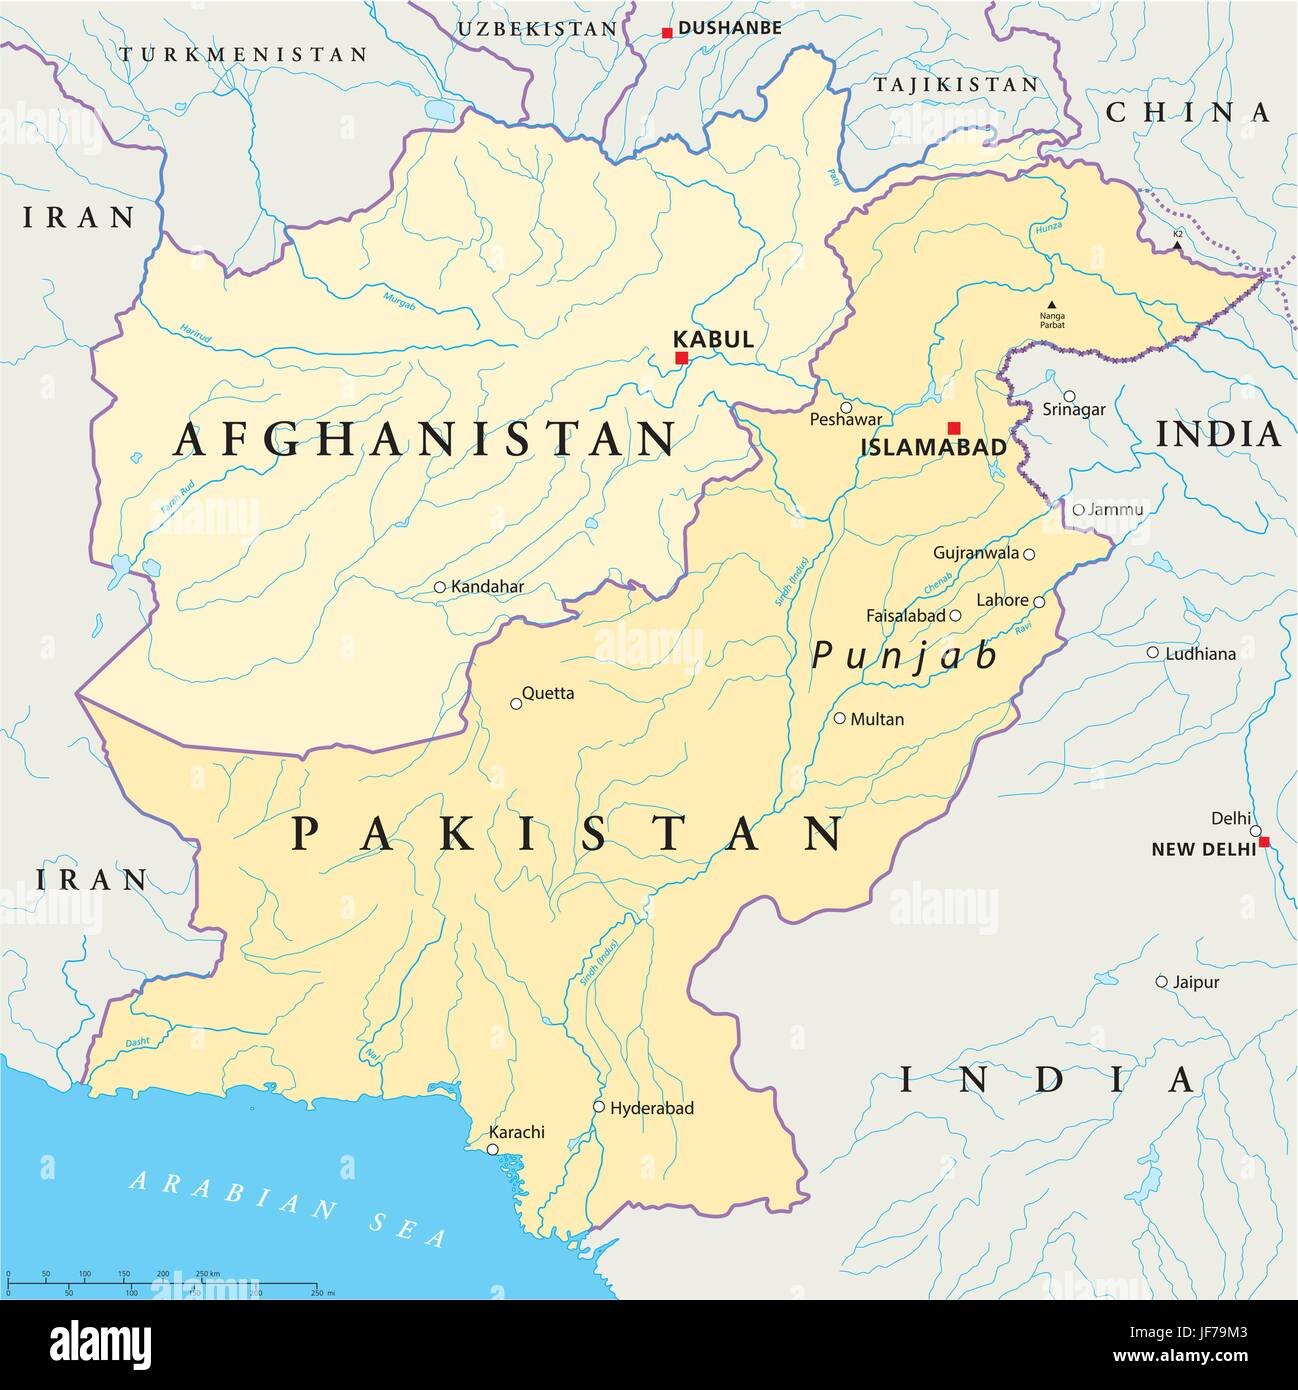 pakistan afghanistan map atlas map of the world india abstract country